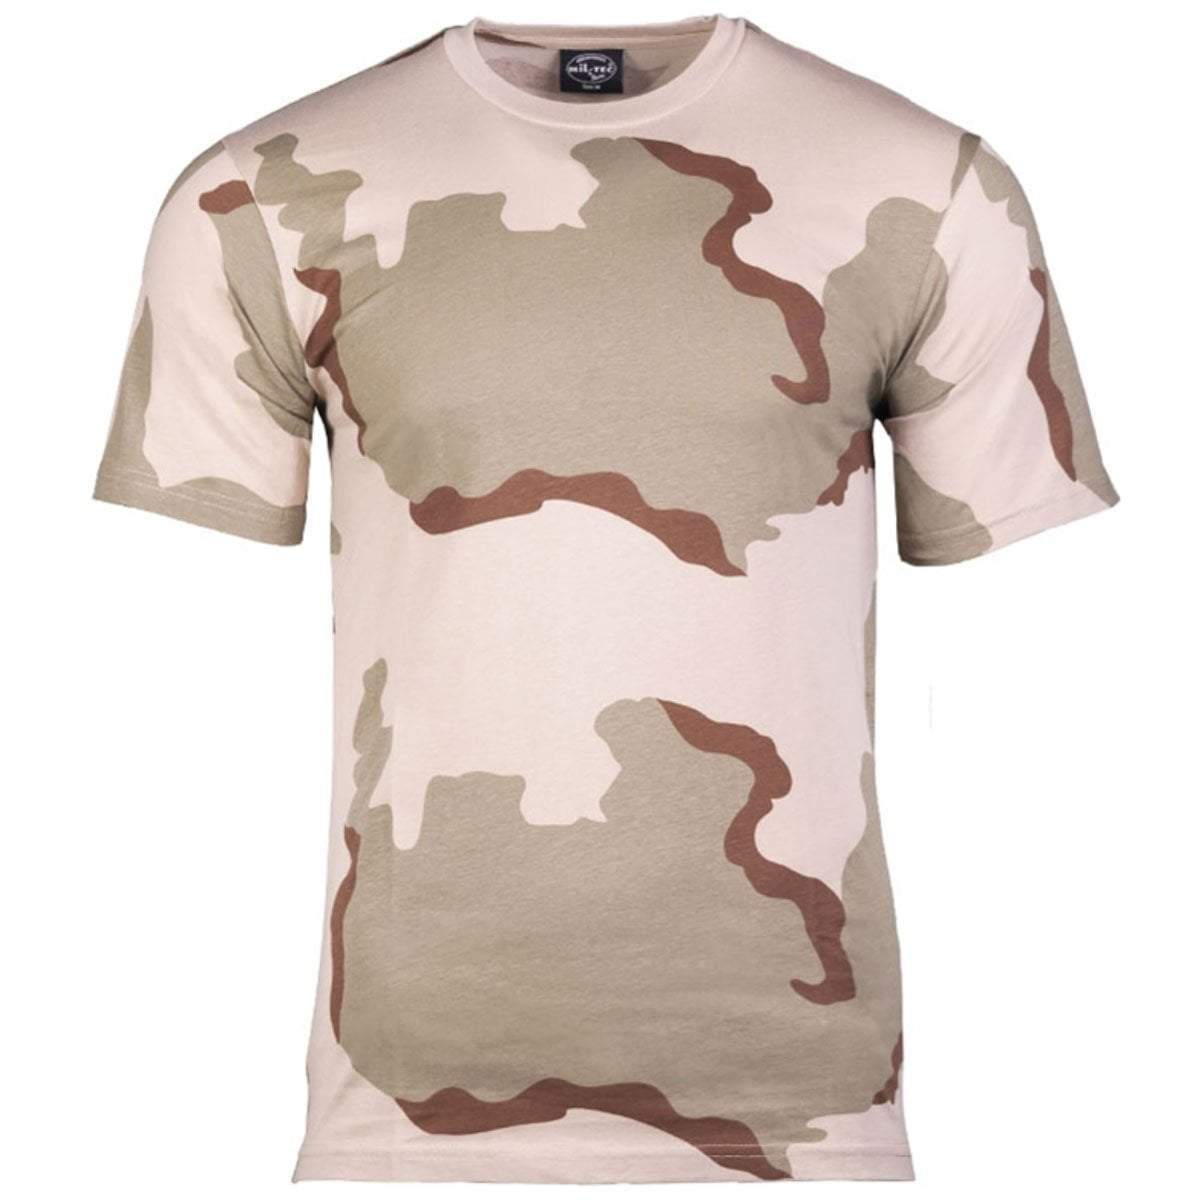 Mil-Tec Short Sleeve T-Shirt 3 Colour Desert Camo | UKMCPro